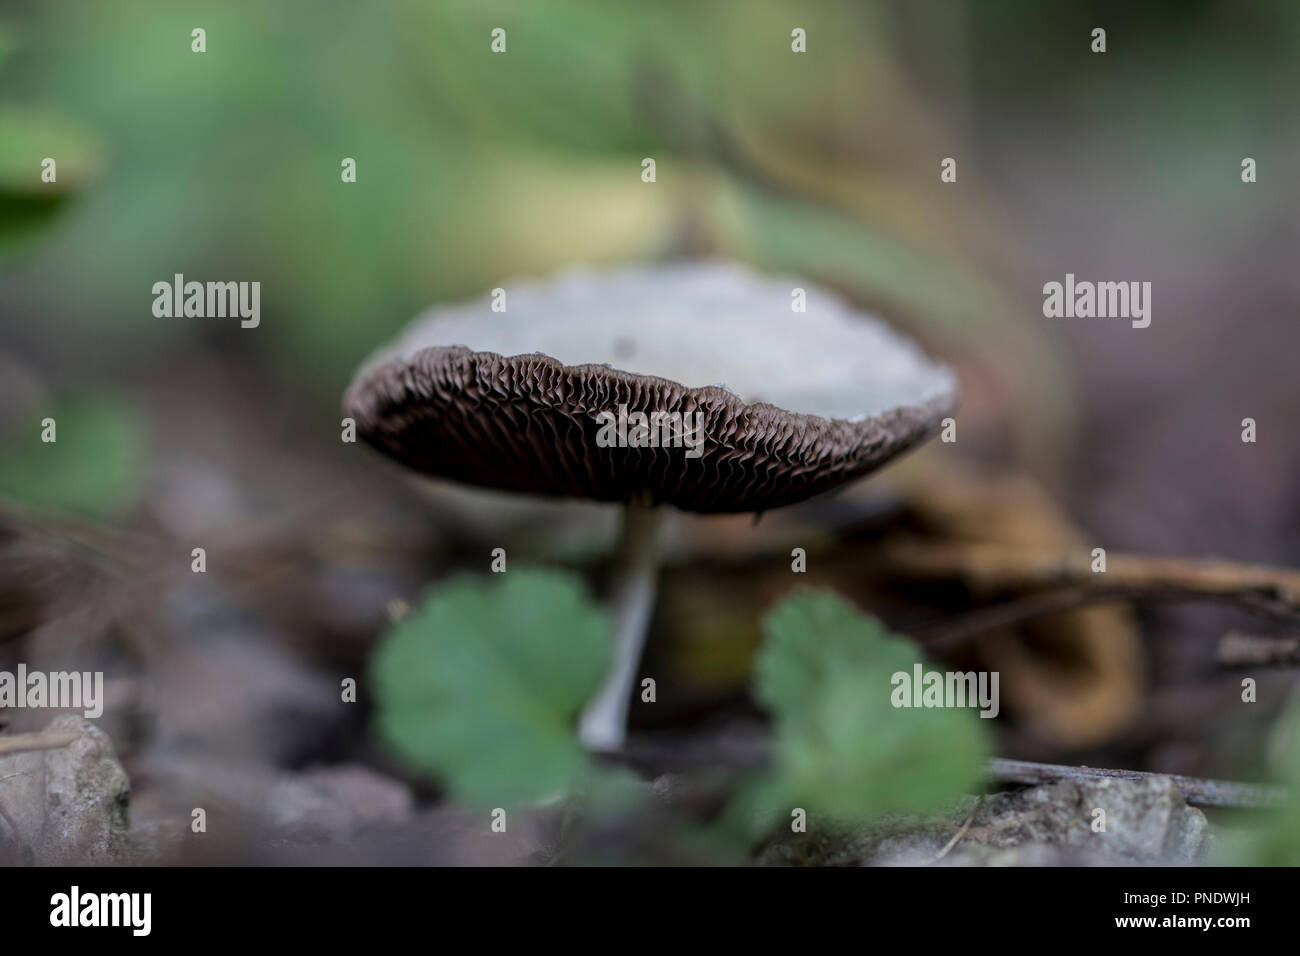 Lonely mushroom in the forest. Close up of a toadstool helping the process of natural decomposition. Powerful microorganisms. - Stock Image